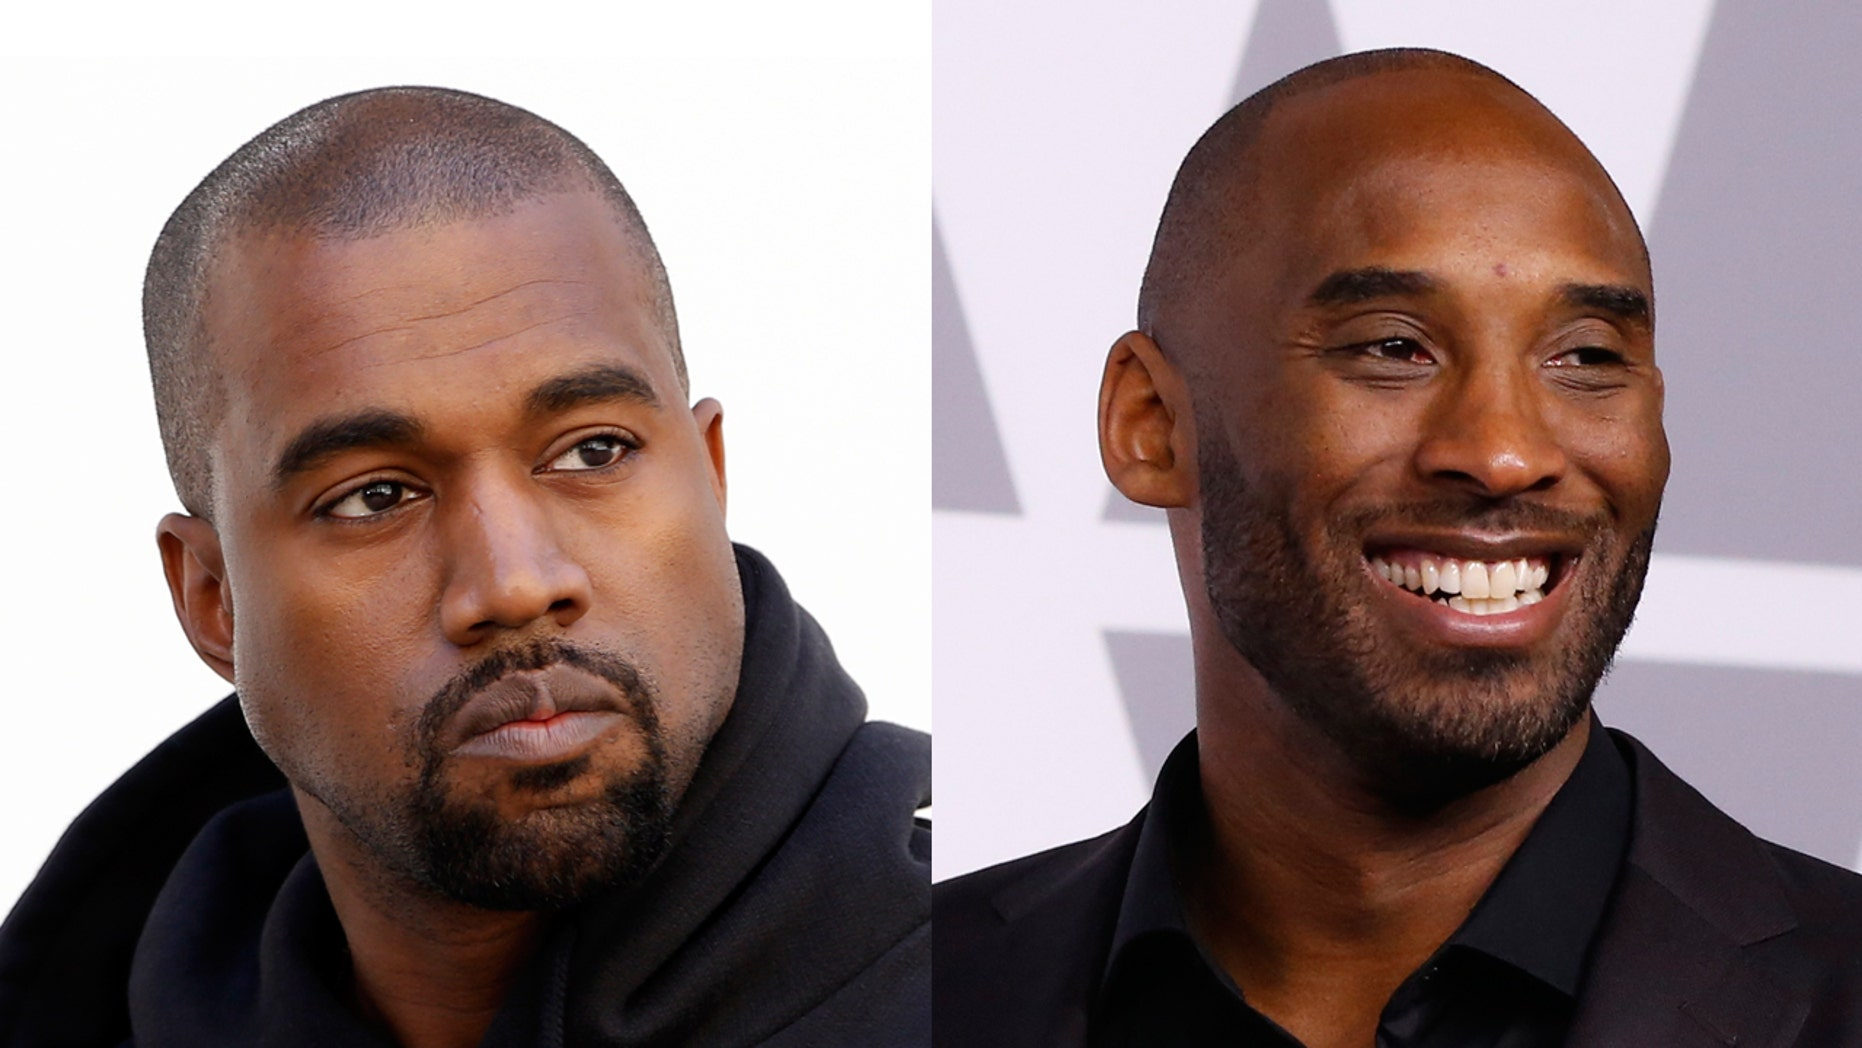 NBA star Kobe Bryant joins the long list of celebrities that have criticized Kanye West for his recent comments about slaverly.